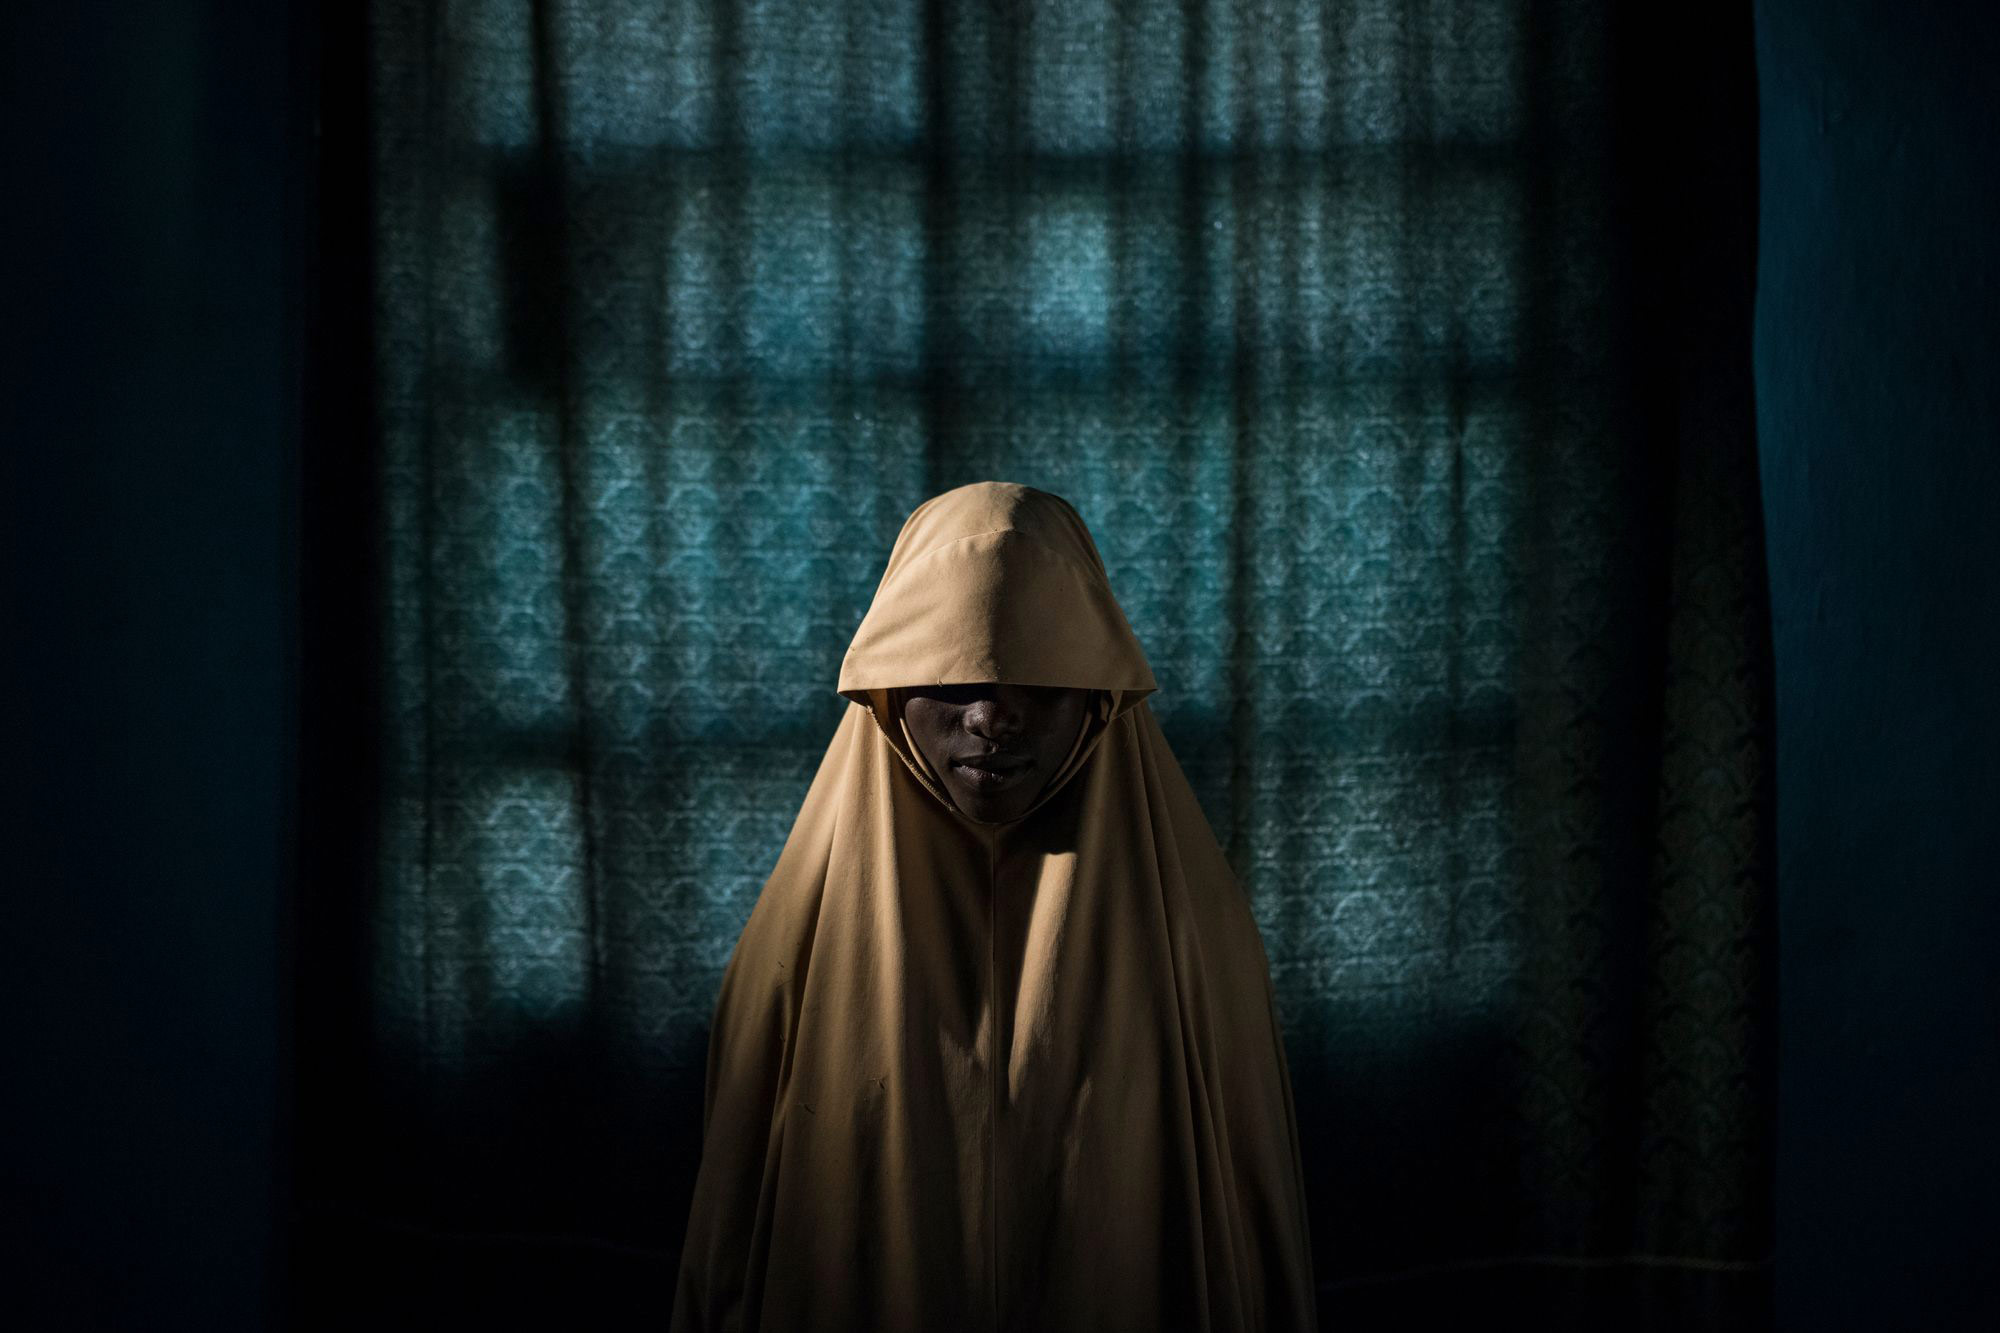 Boko Haram Strapped Suicide Bombs to Them, © Adam Ferguson, United States, 2nd Place Series, LensCulture Portrait Awards